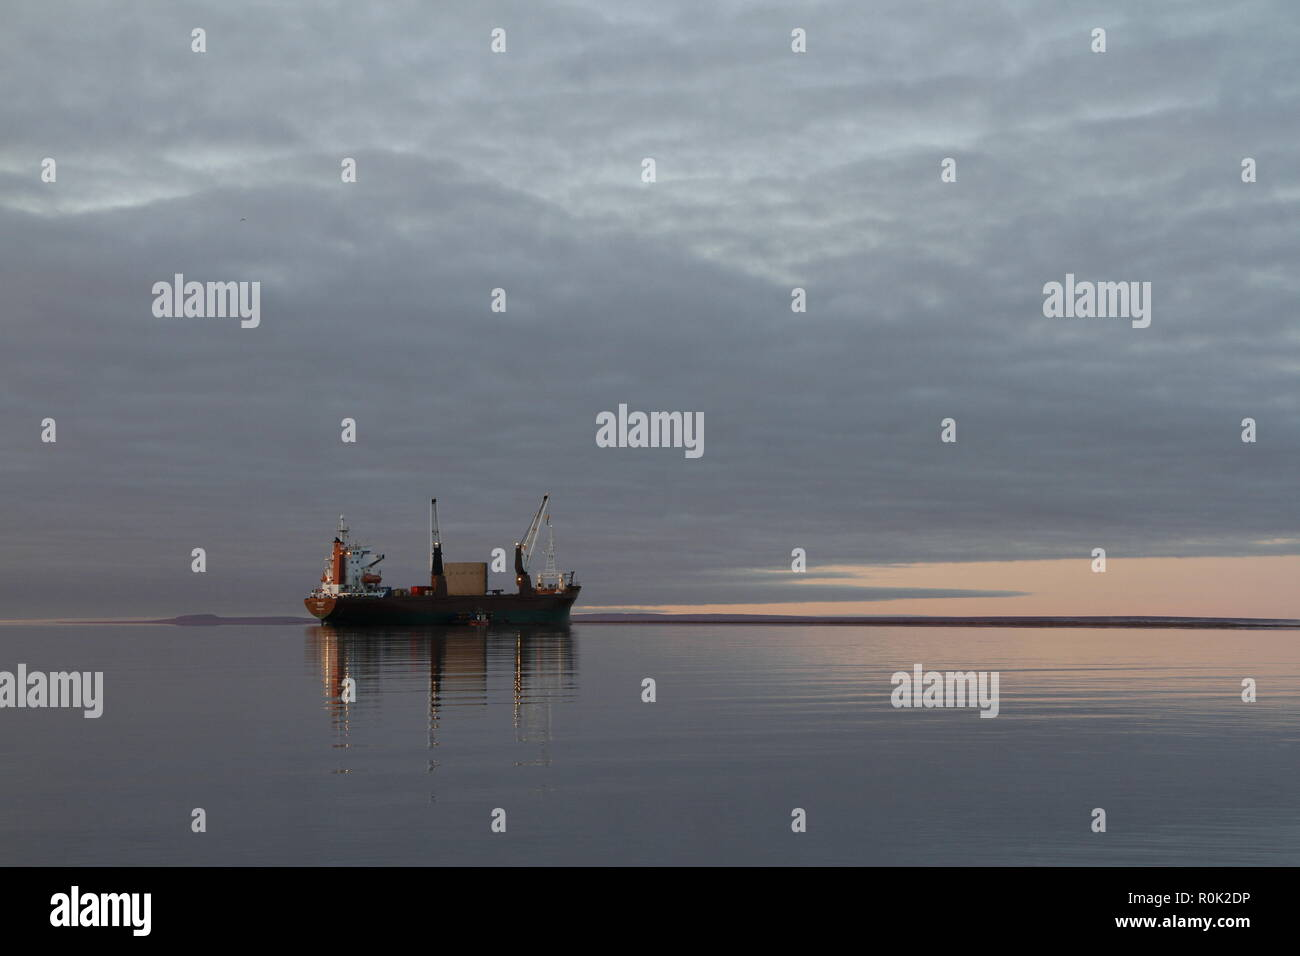 Resupply cargo barge on the waters of Nunavut near the community of Baker Lake in the Kivalliq Region - Stock Image